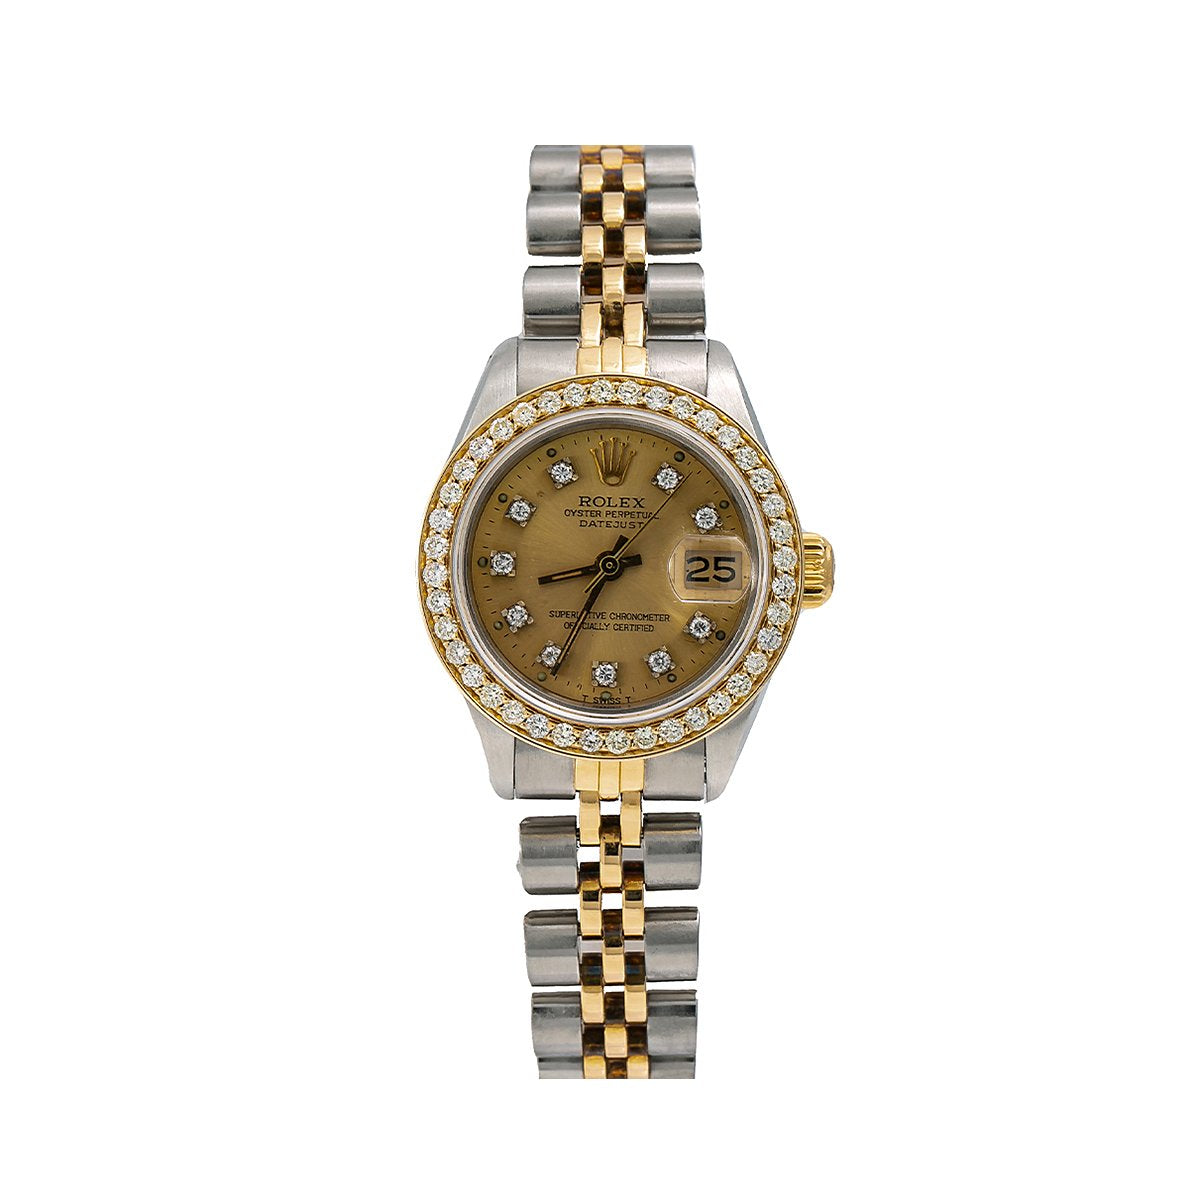 Rolex Datejust Diamond Watch, 6917 26mm, Champagne Diamond Dial With 0.90 CT Diamonds